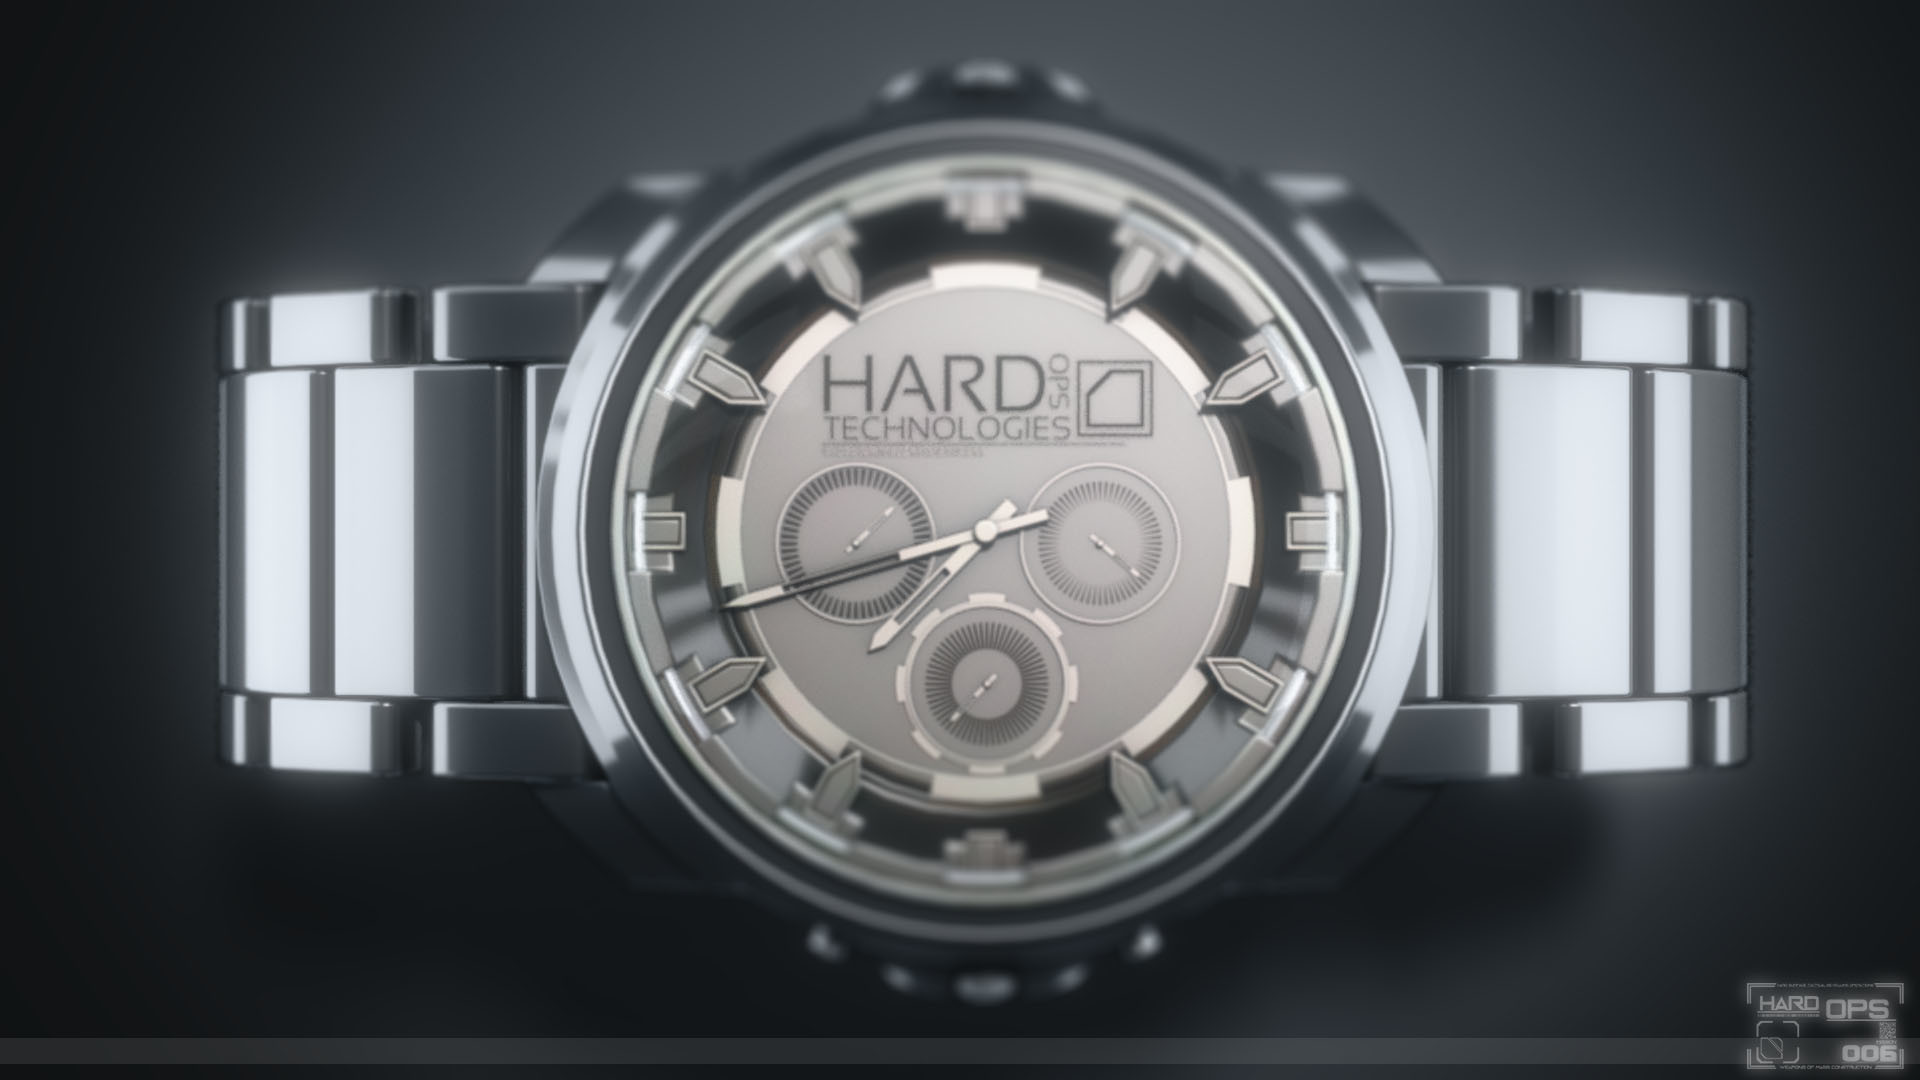 Jerry perkins mx1001 hardopswatch3